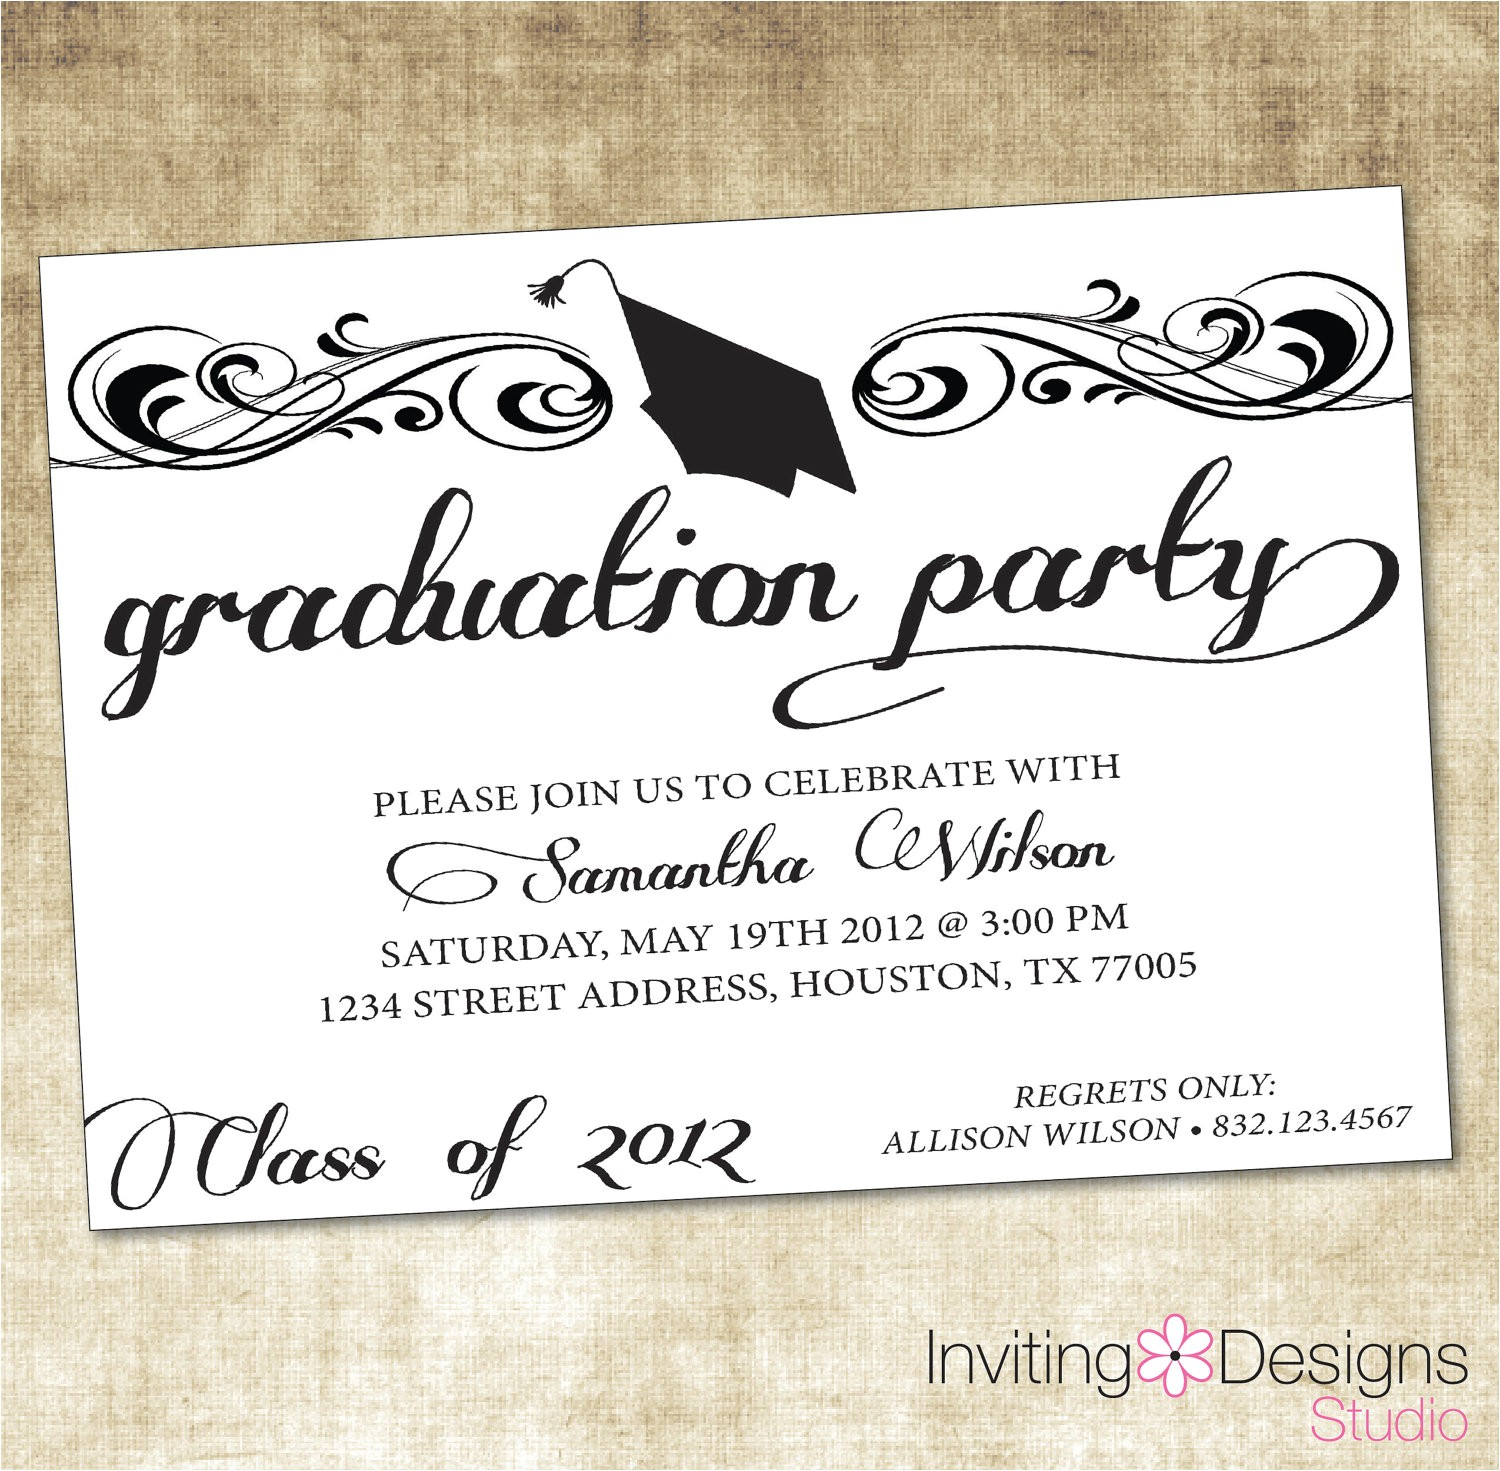 What to Put On A Graduation Party Invitation Unique Ideas for College Graduation Party Invitations